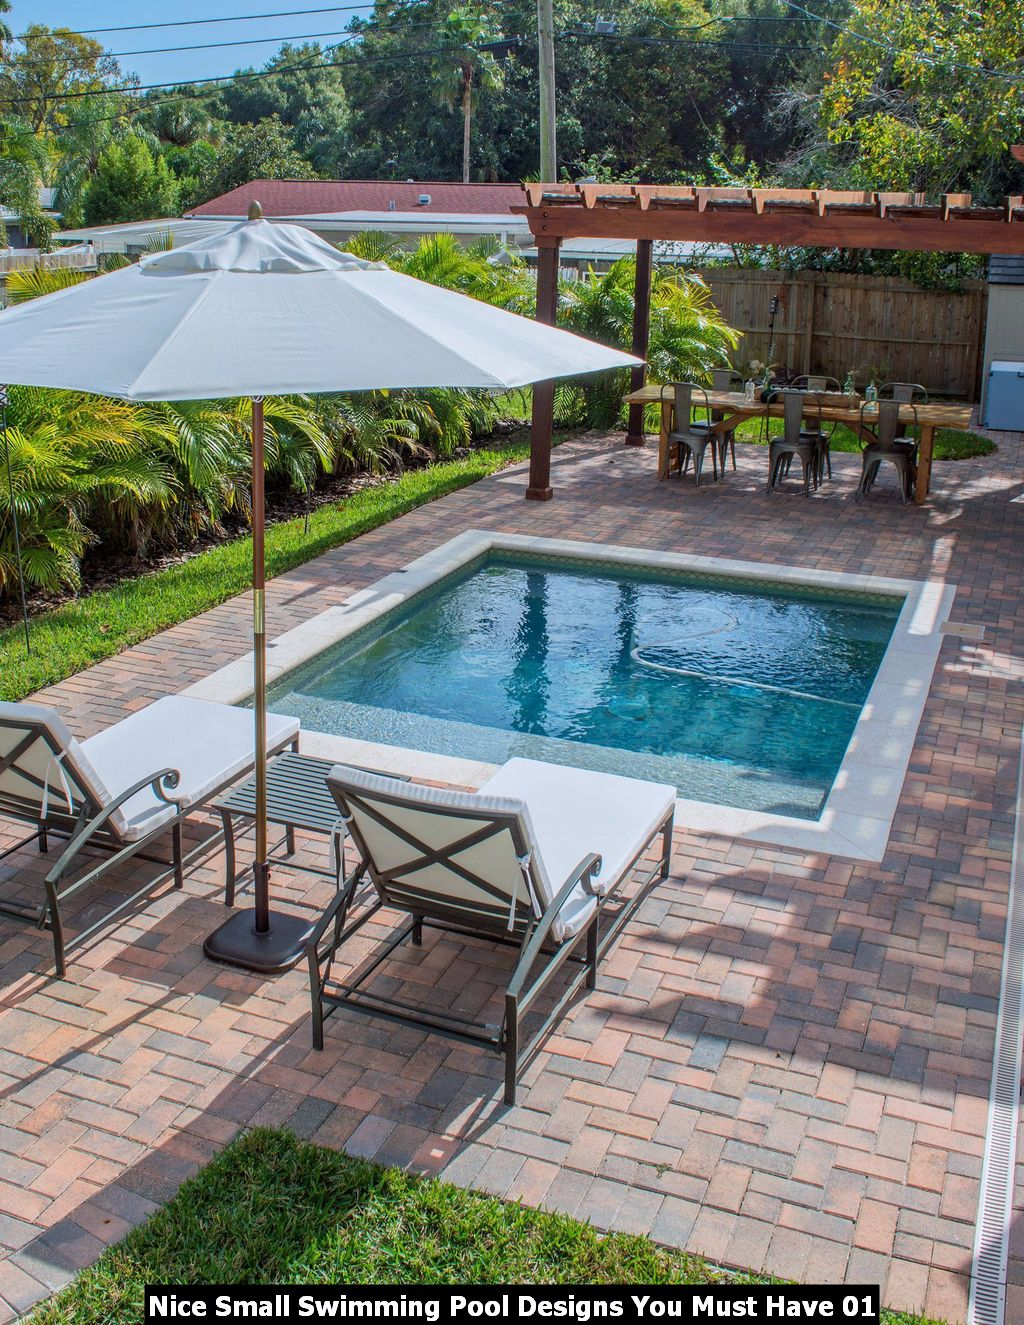 Nice Small Swimming Pool Designs You Must Have 01